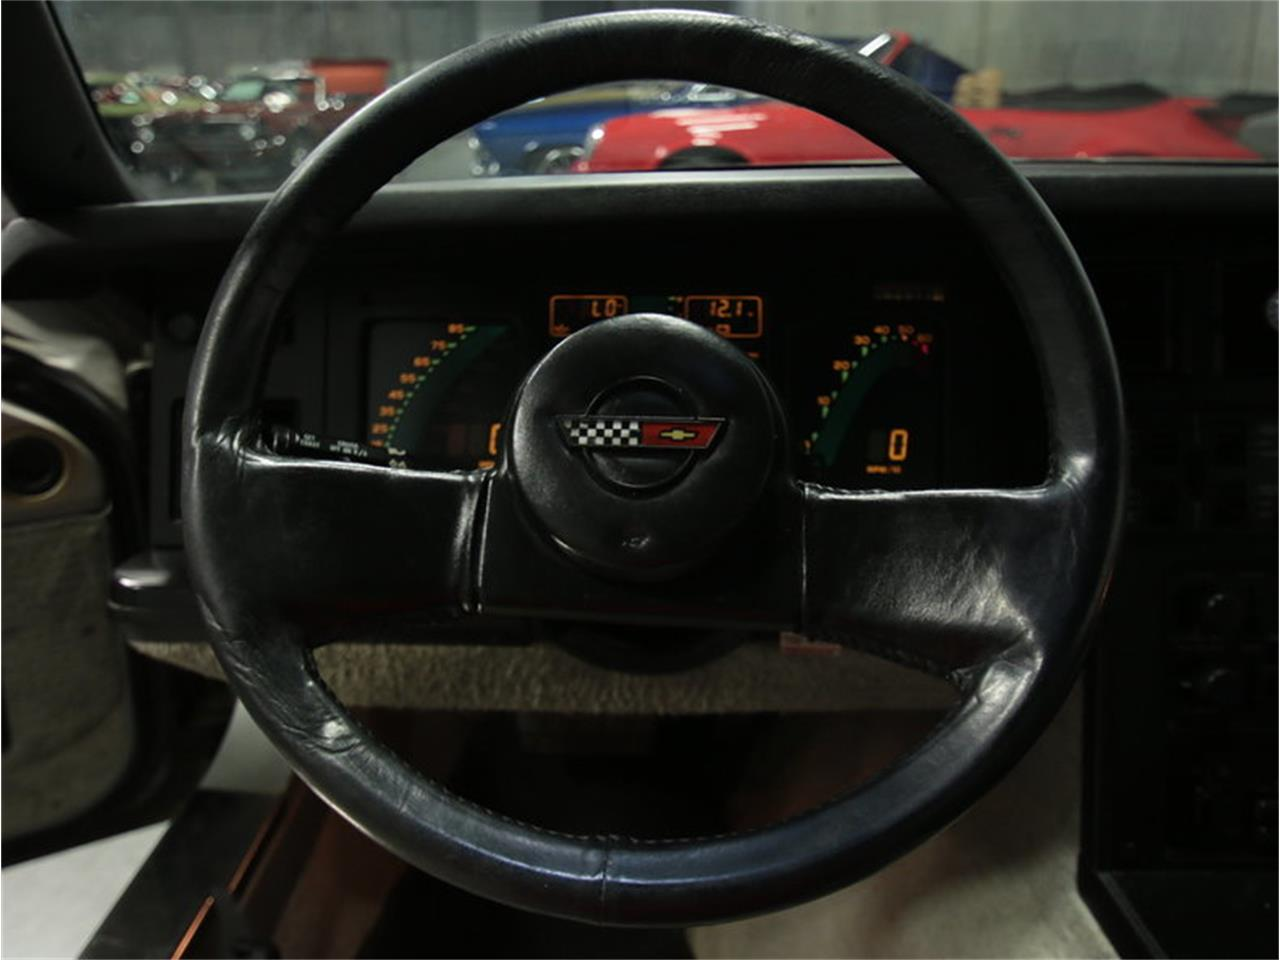 Large Picture of 1985 Chevrolet Corvette L-98 located in Georgia Offered by Streetside Classics - Atlanta - J07A